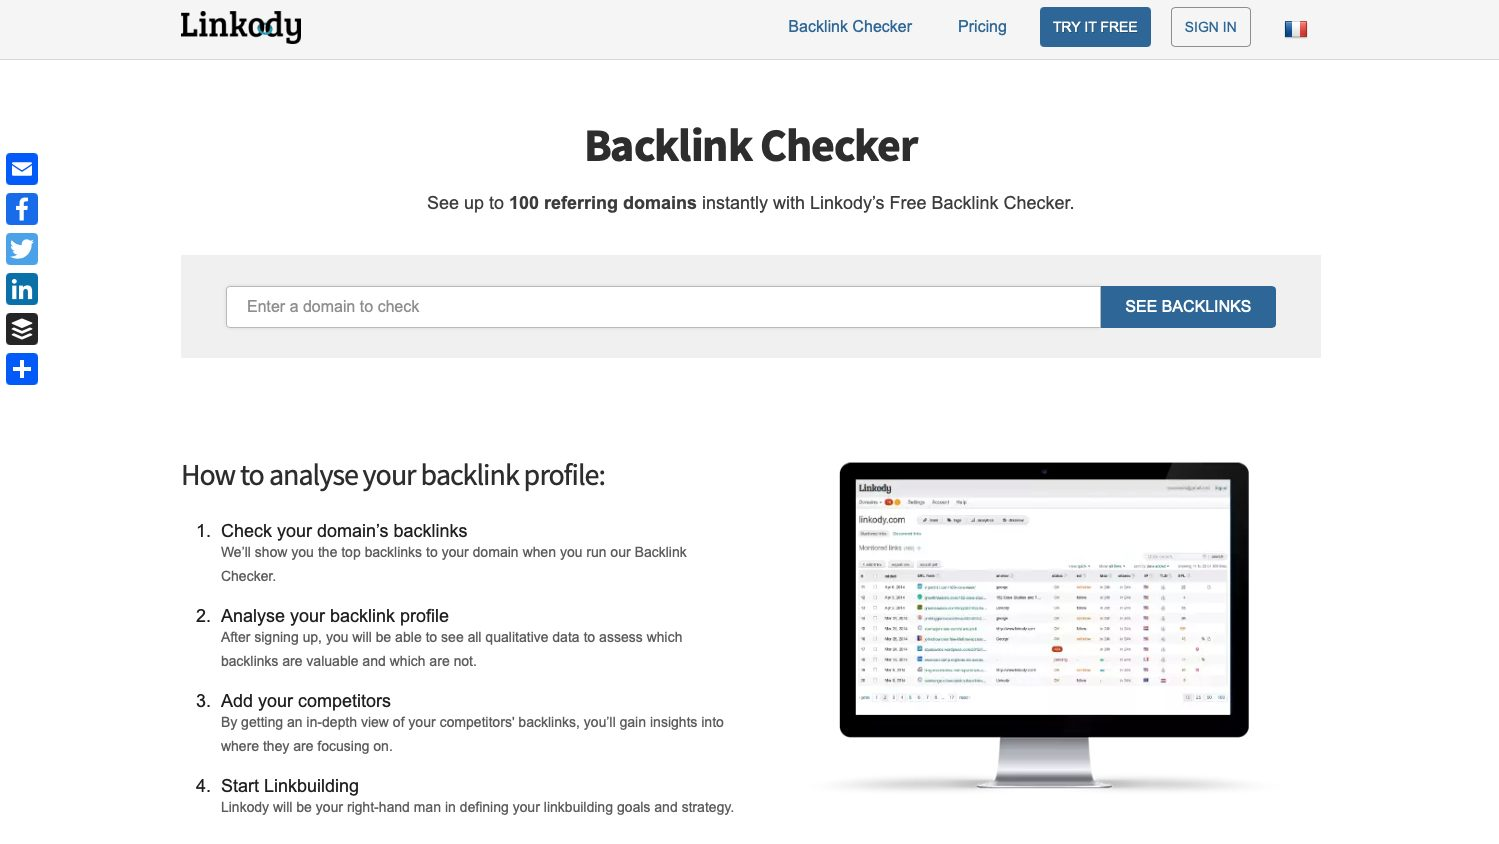 Linked Backlink Checker